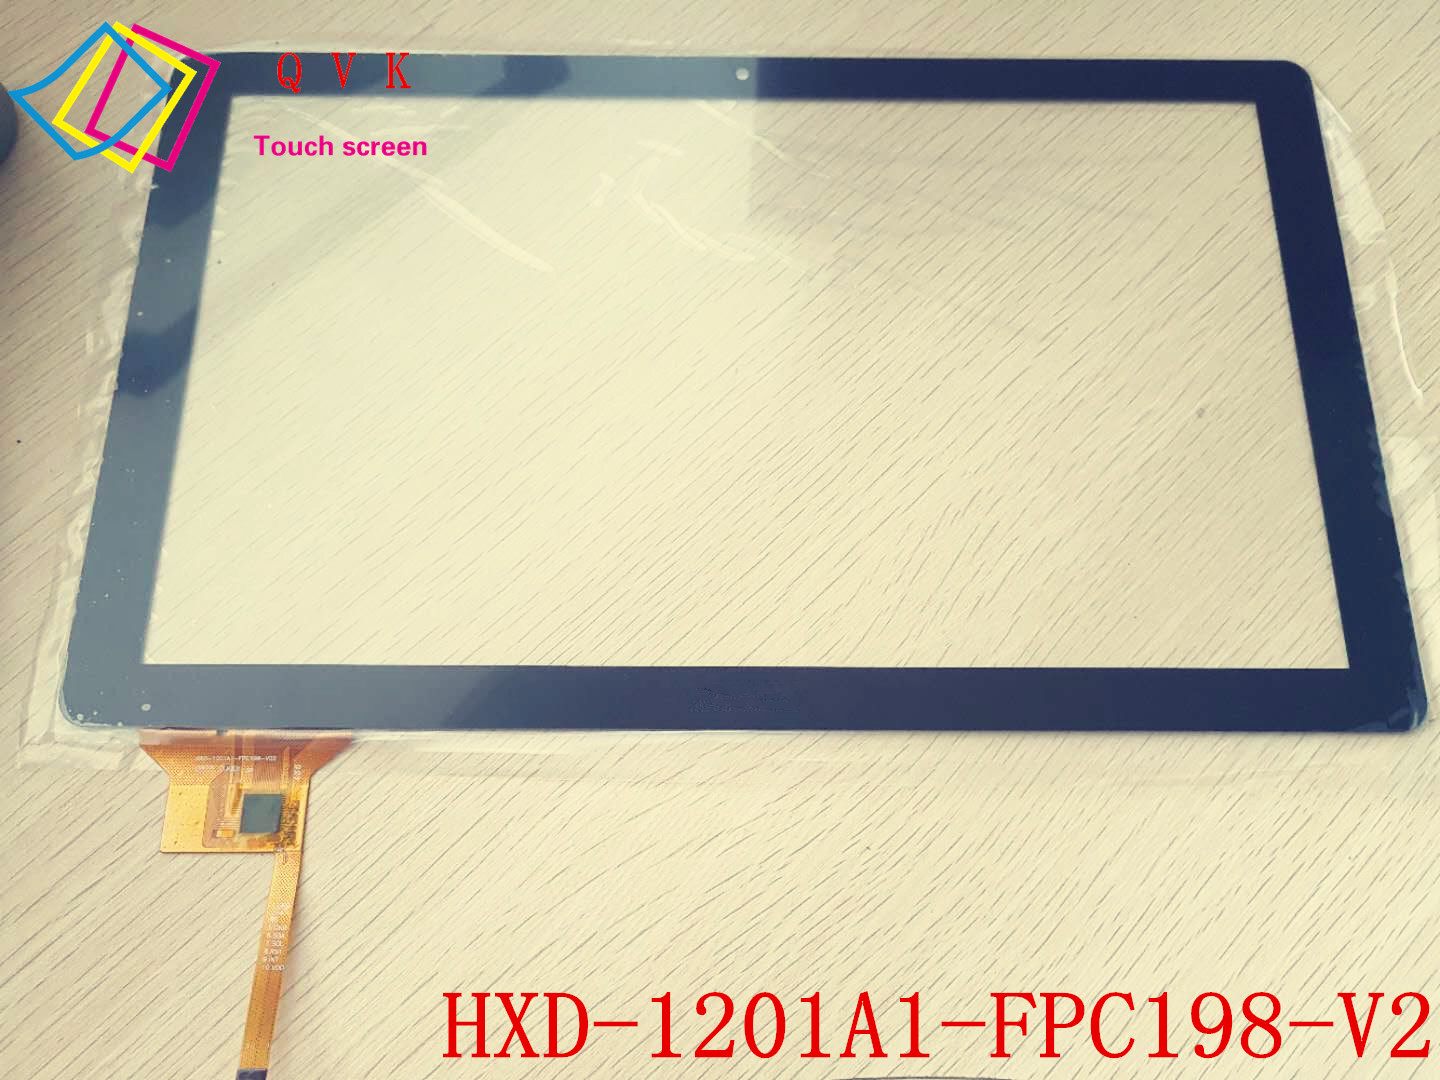 Black 12.1 Inch touch screen For HXD-1201A1-FPC198-V2 Capacitive touch screen Tablet PC replacement repair запчасти для мобильных телефонов 7 inch new handwriting tablet capacitive touch screen screen screen number is sg5740a fpc v3 1 sg5740a fpc v3 1